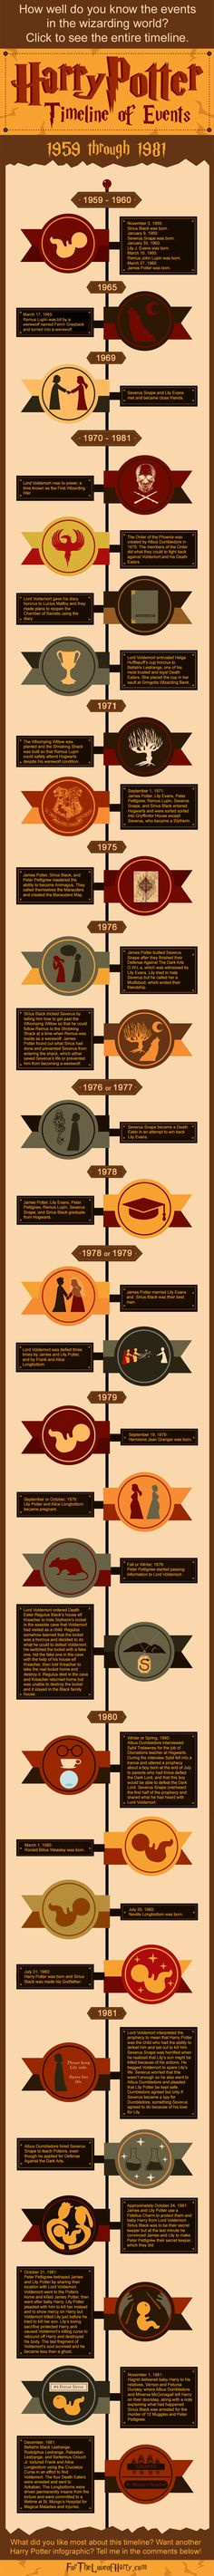 This Harry Potter infographic details events that happened in the wizarding world from 1959 (the birth of characters) to 1981 (baby Harry left with the Dursleys).